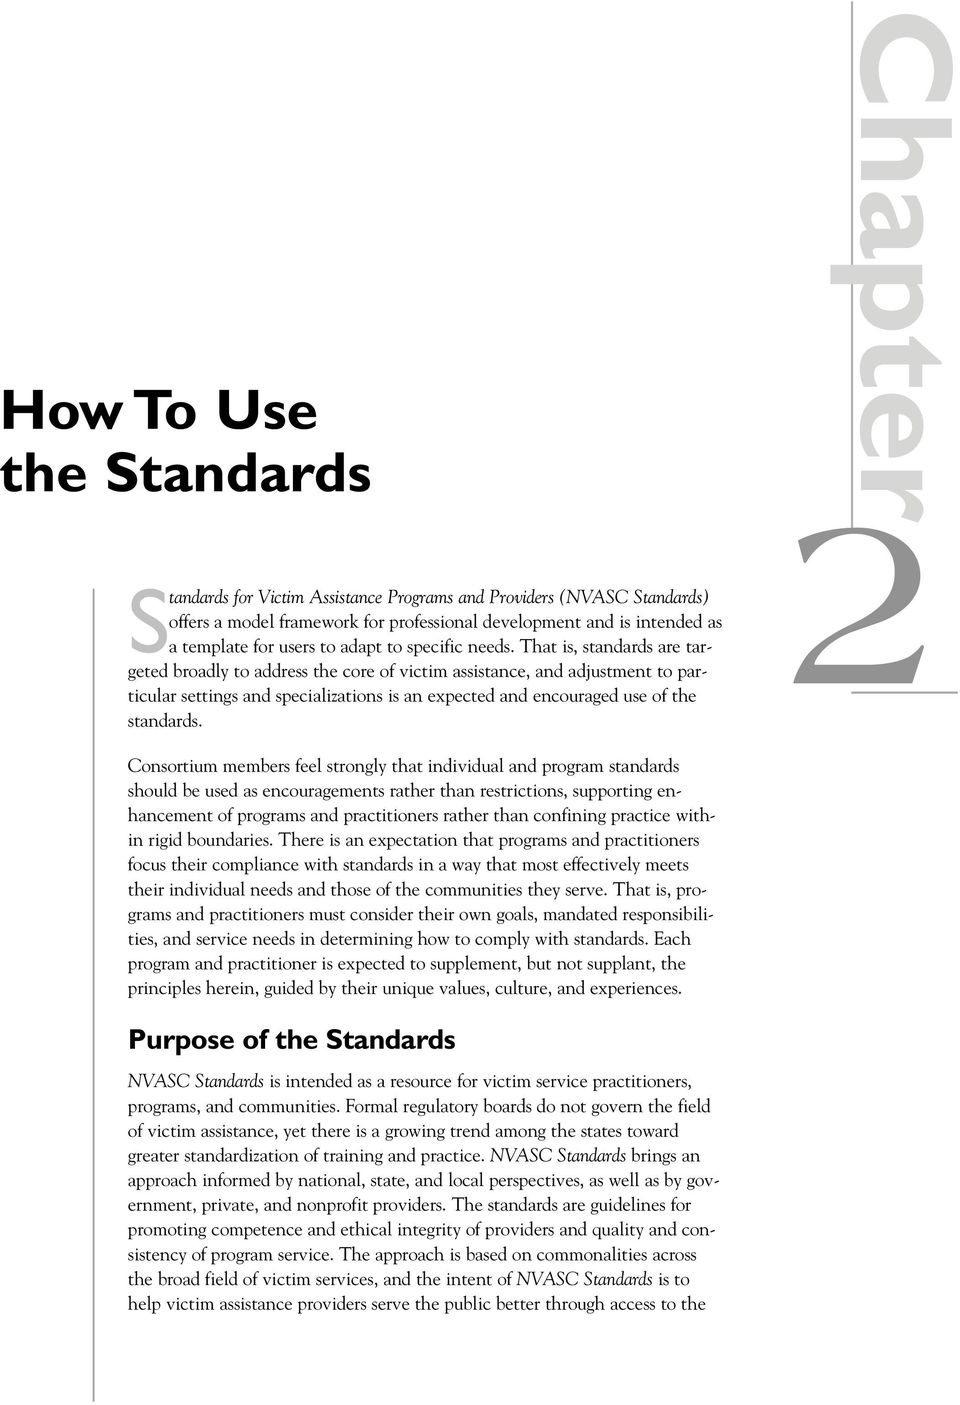 That is, standards are targeted broadly to address the core of victim assistance, and adjustment to particular settings and specializations is an expected and encouraged use of the standards.